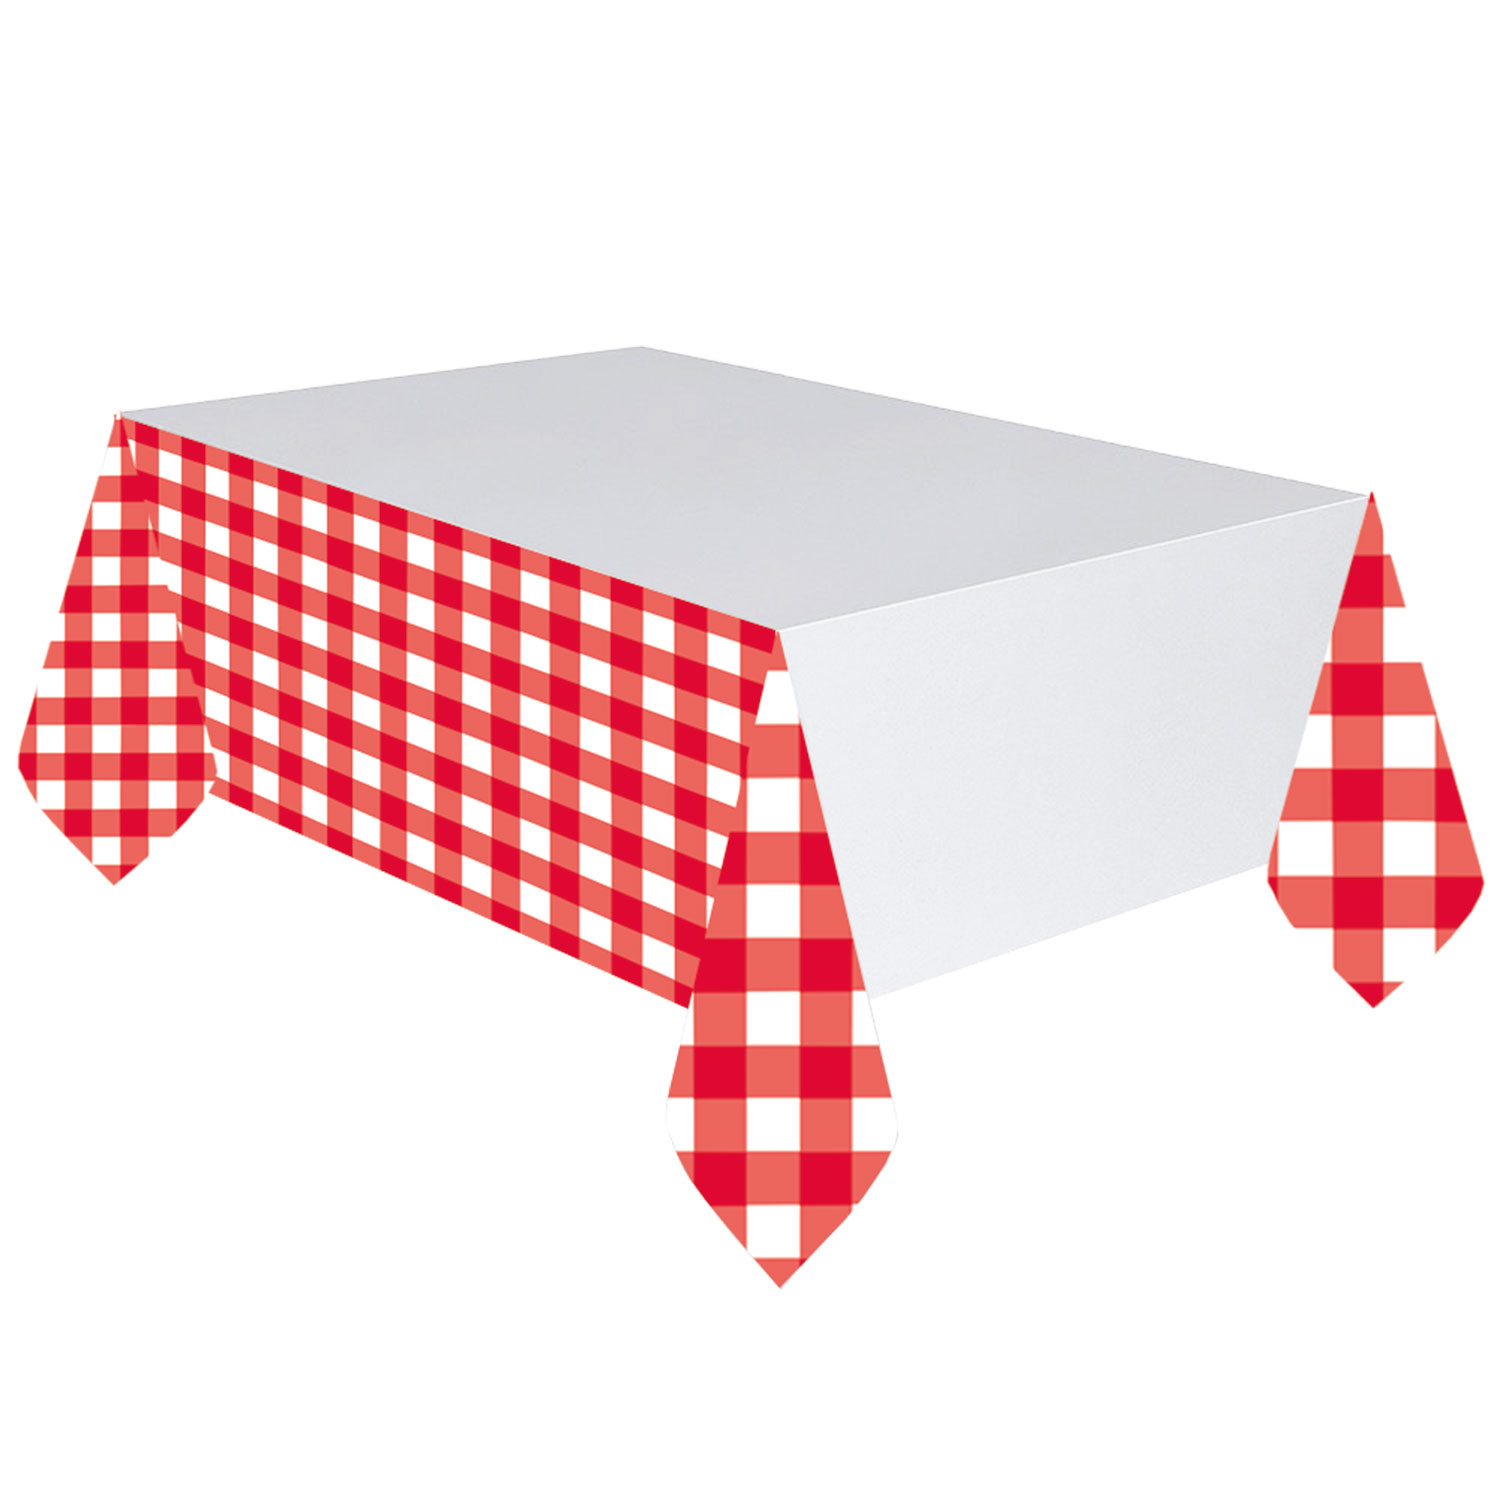 Picnic Party Plastic Tablecovers 1 37m X 2 6m 6 Pc Amscan